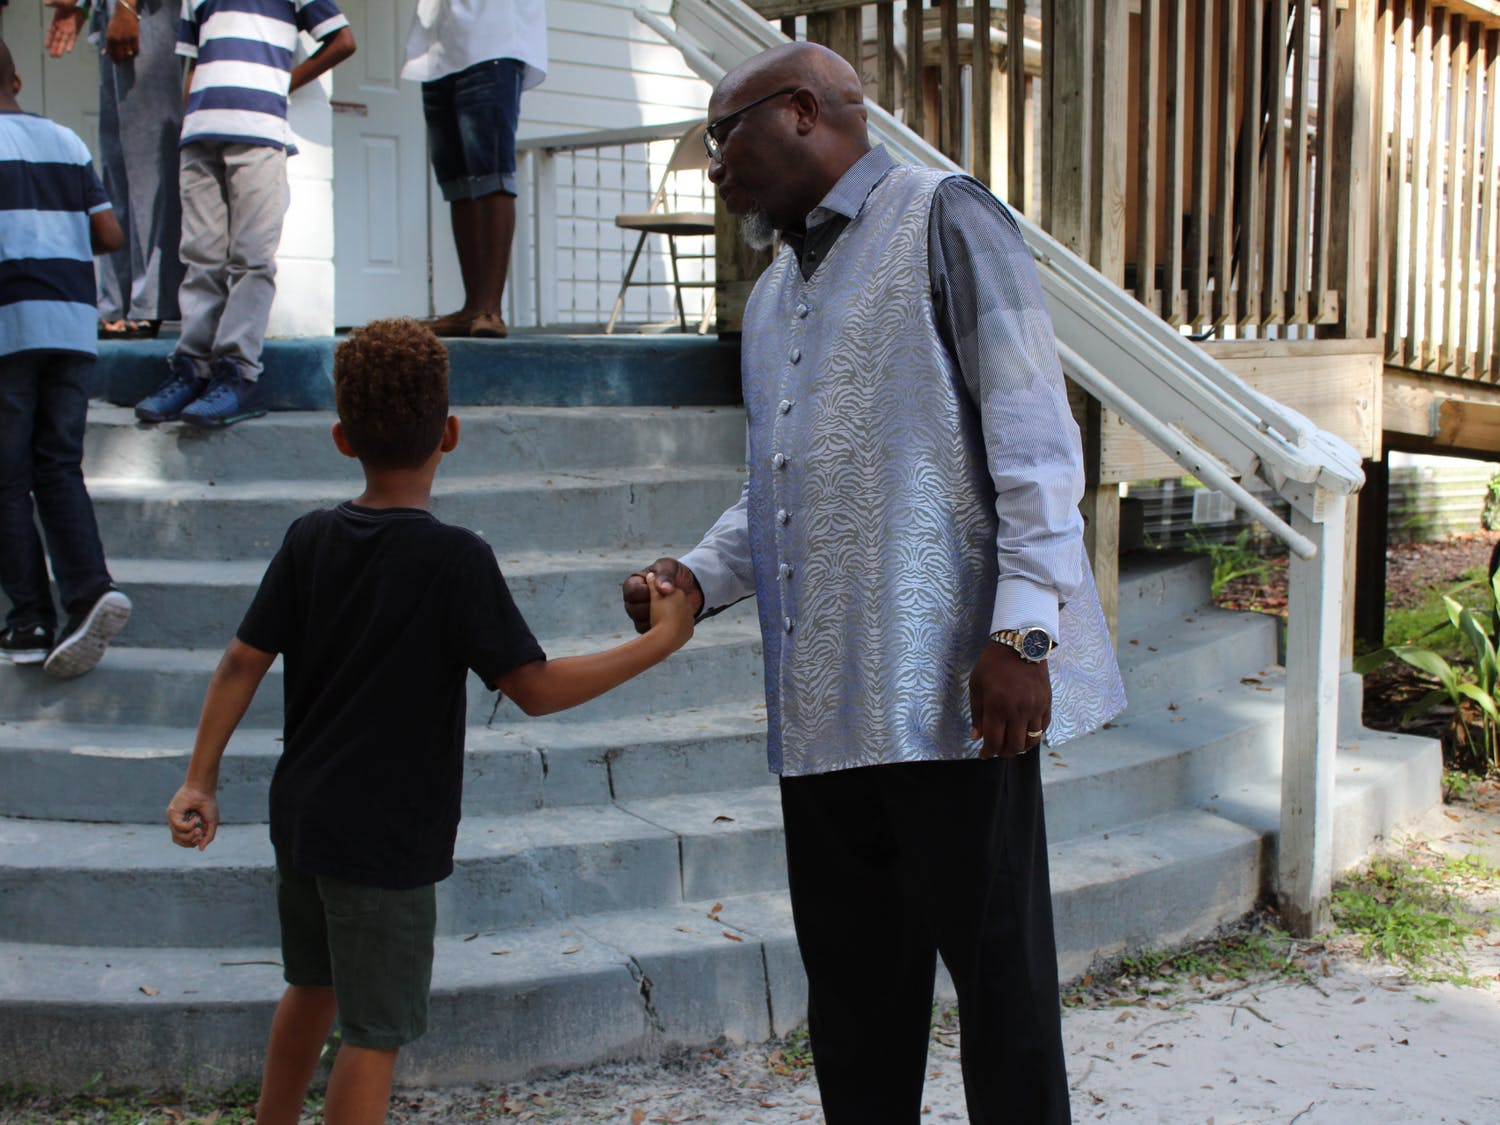 Chris Stokes greets a young churchgoer on Sunday outside the New Beginning Christian Worship Center in Micanopy. About 20 children attended the service.